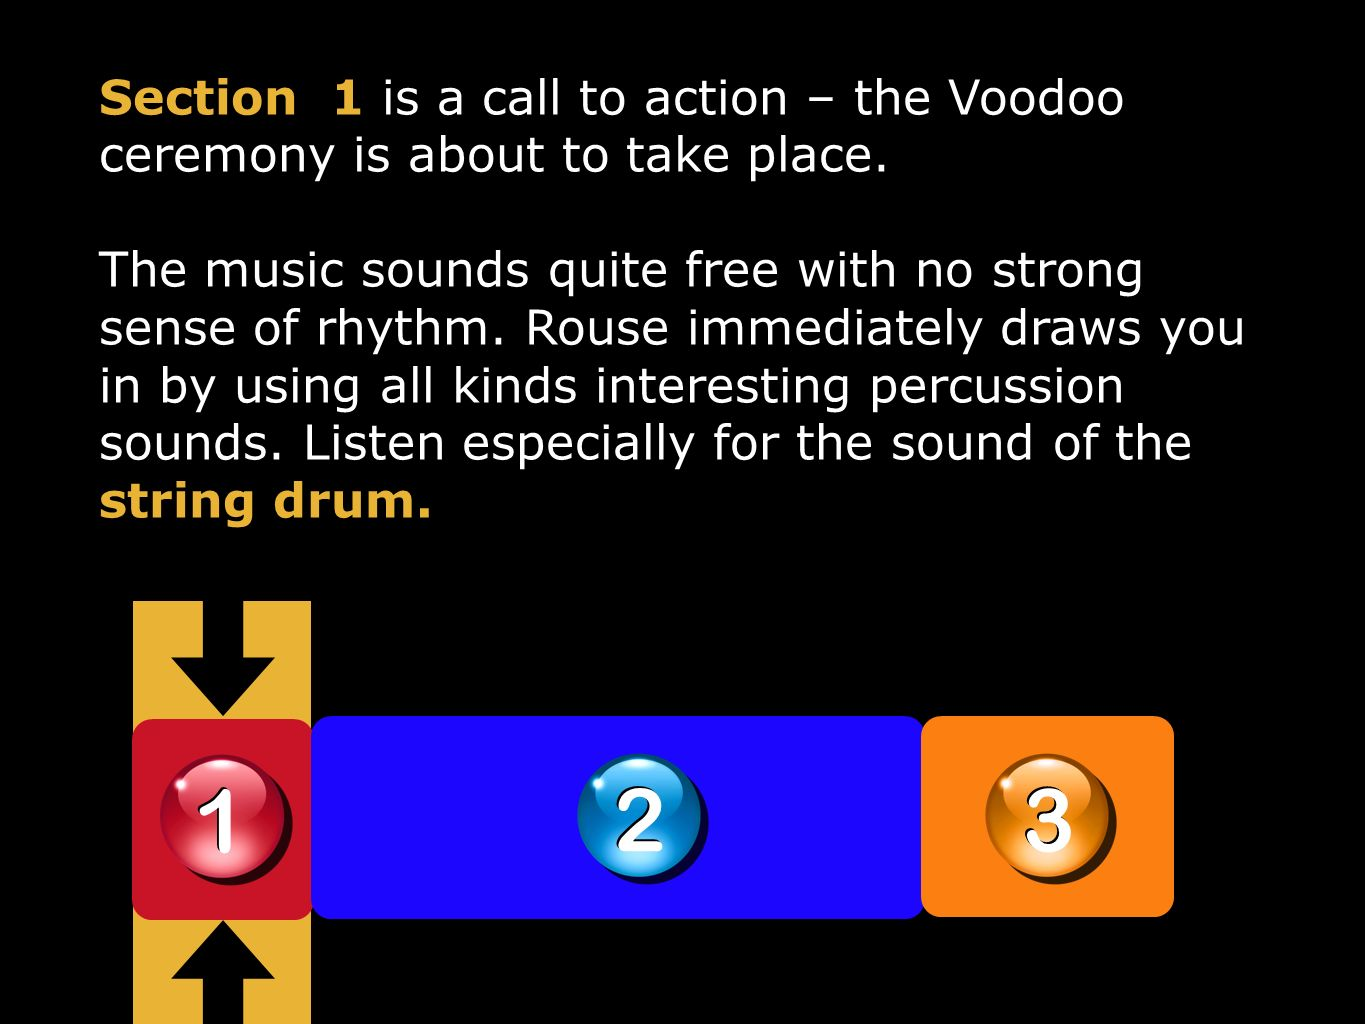 1 1 2 2 3 3 Section 1 is a call to action – the Voodoo ceremony is about to take place. The music sounds quite free with no strong sense of rhythm. Ro